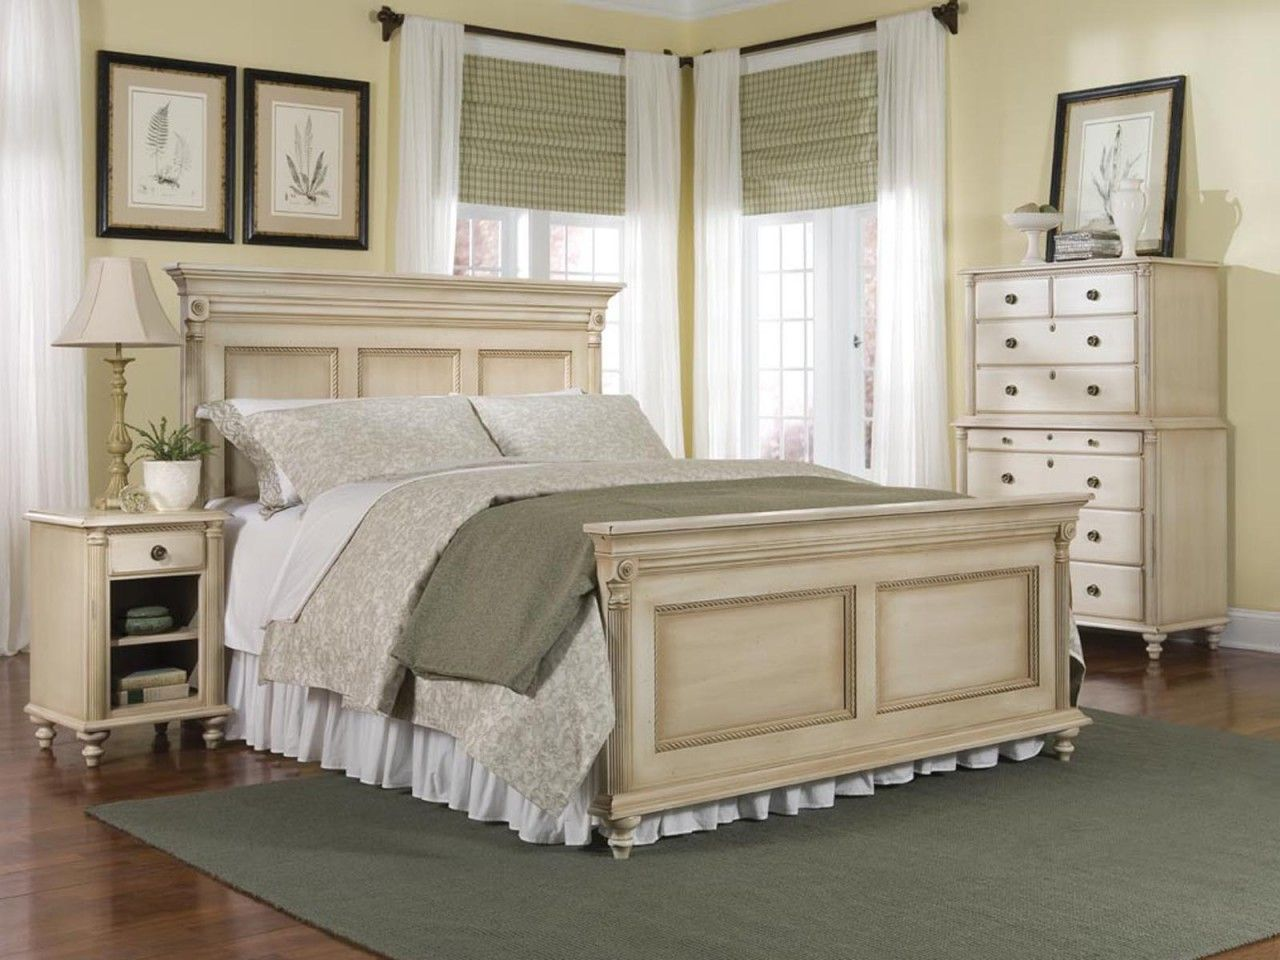 Cream Bedroom Furniture Setsdurham Furniture Savile Row 4